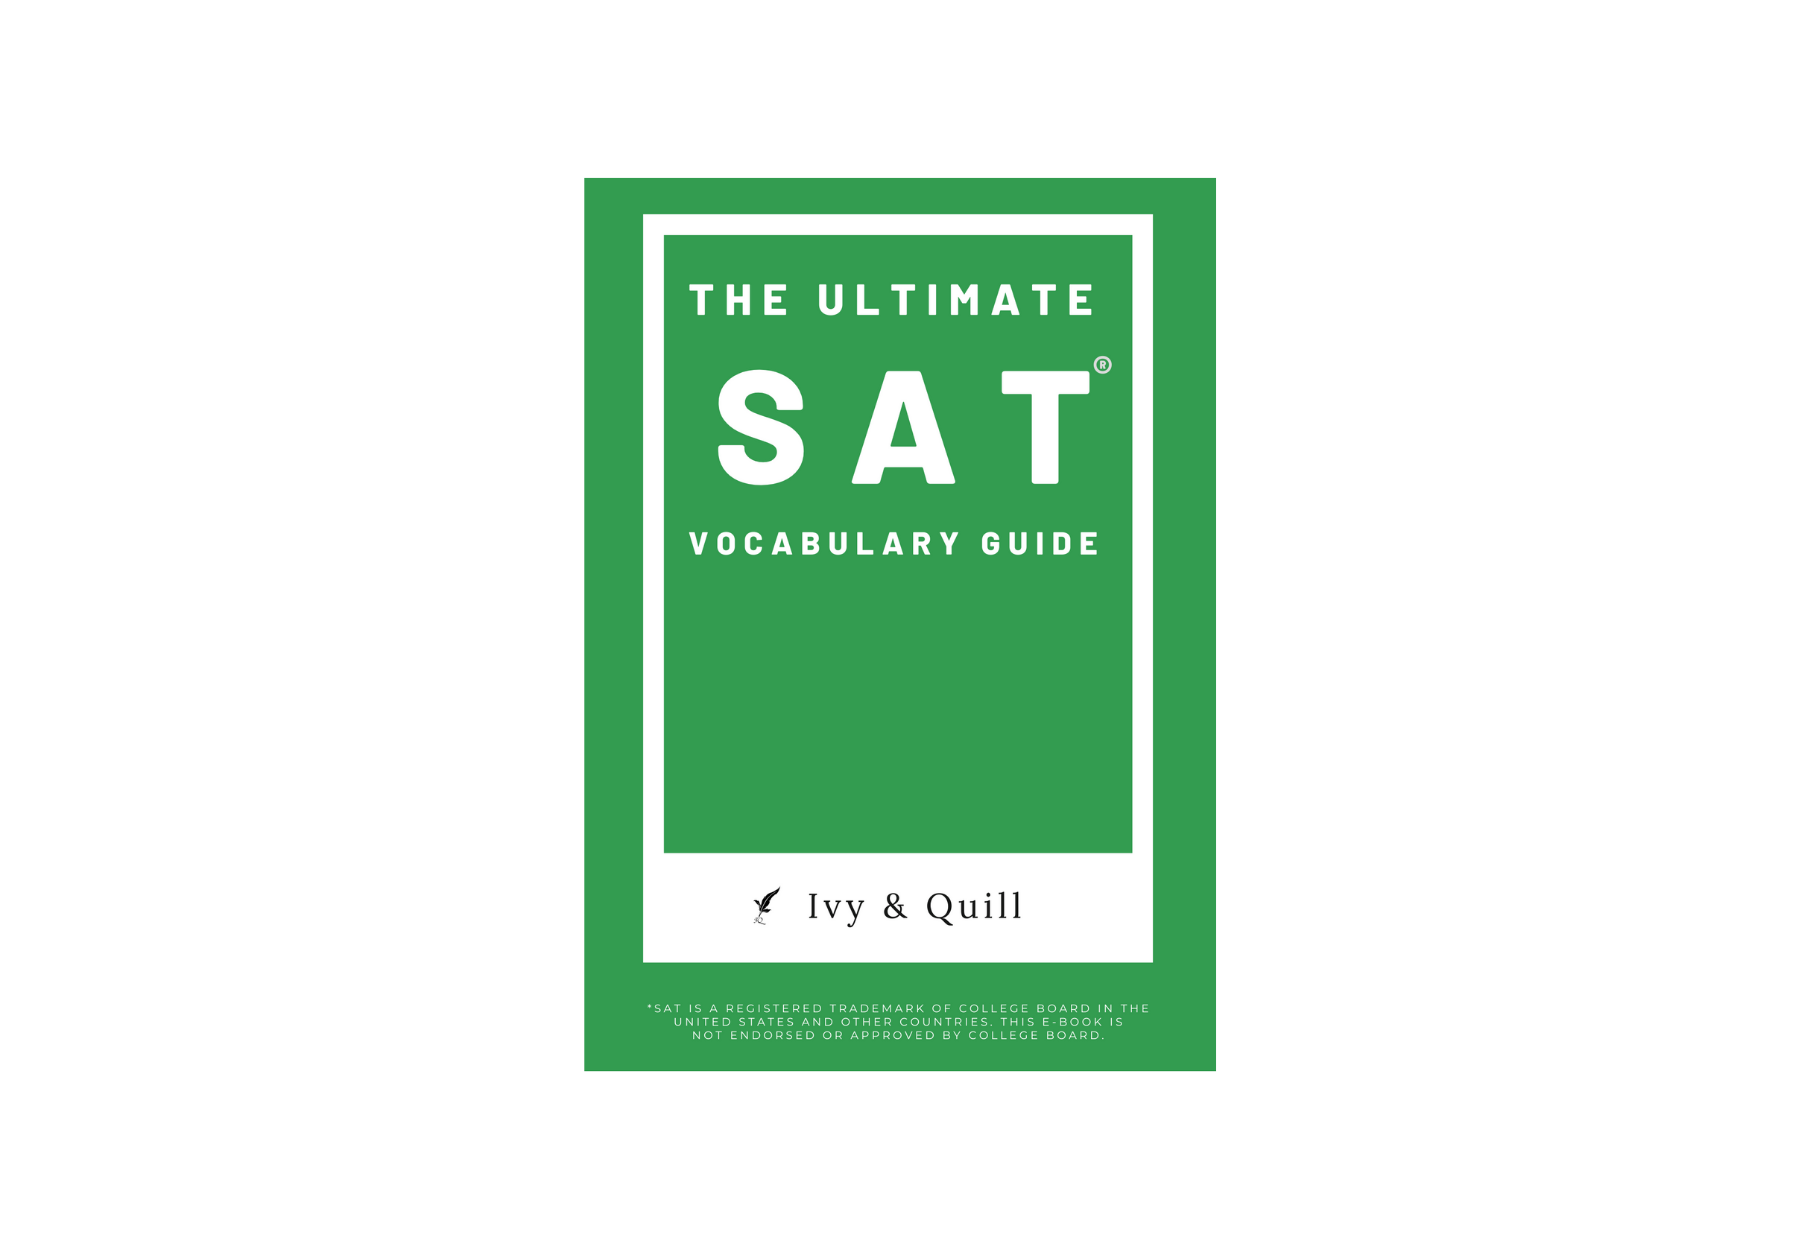 Ivy & Quill - The Ultimate SAT Vocabulary Guide